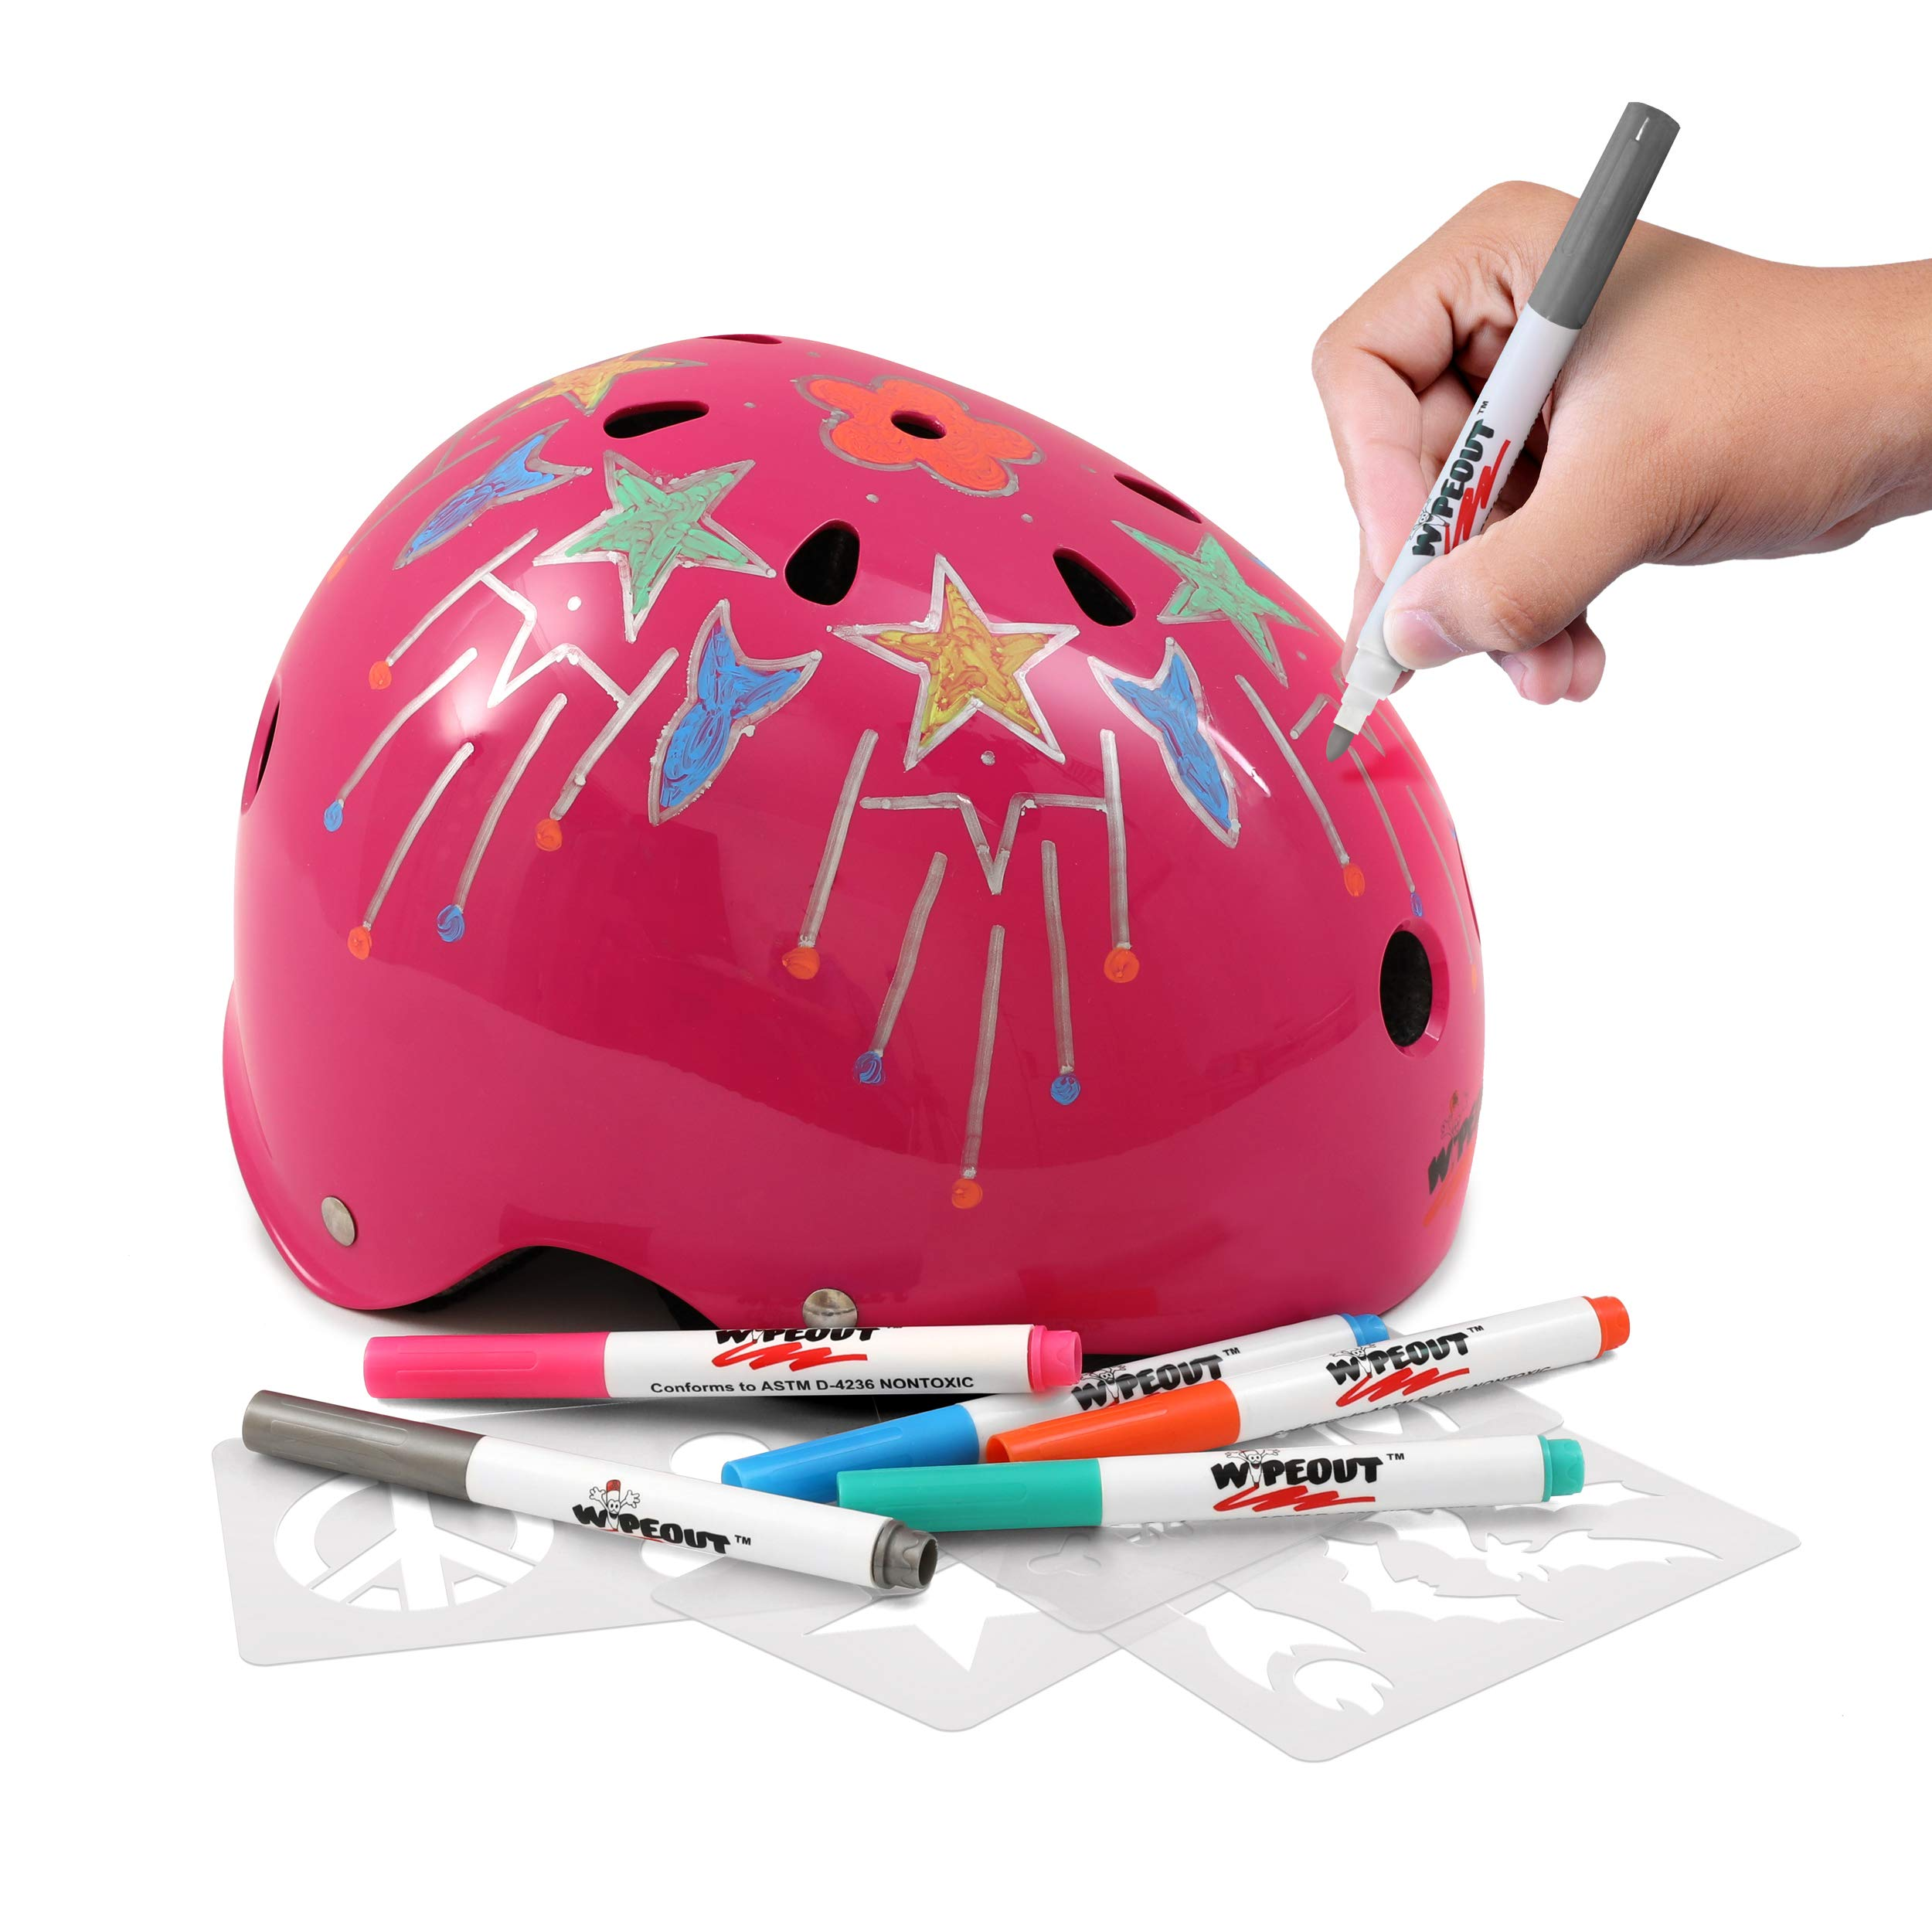 Wipeout Dry Erase Kids' Bike, Skate, and Scooter Helmet, Neon Pink, Ages 8+